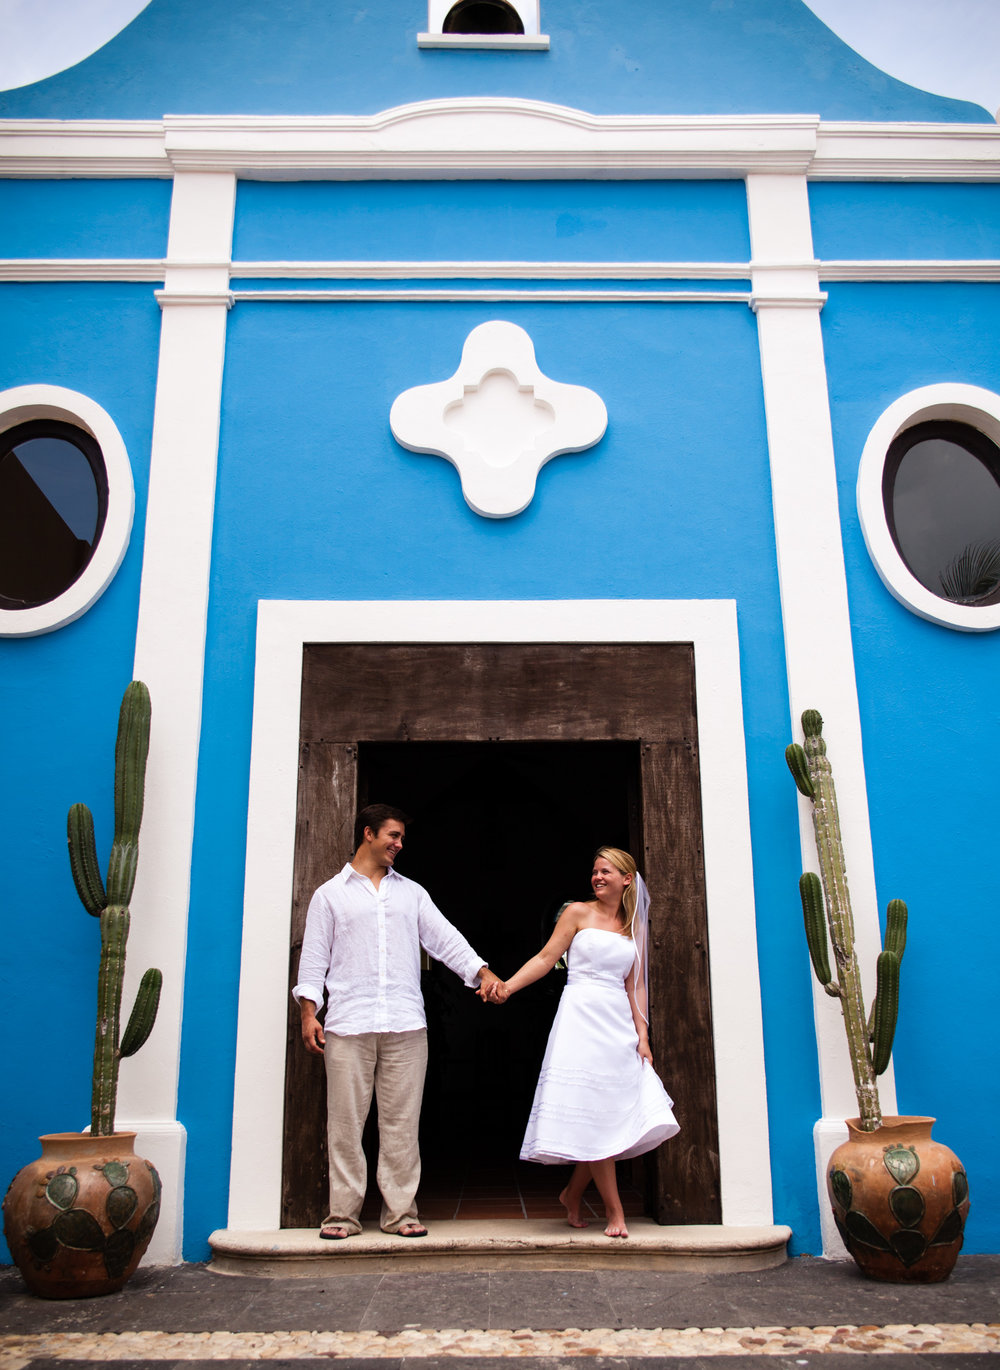 Destination Inspirations - Tulum, Mexico